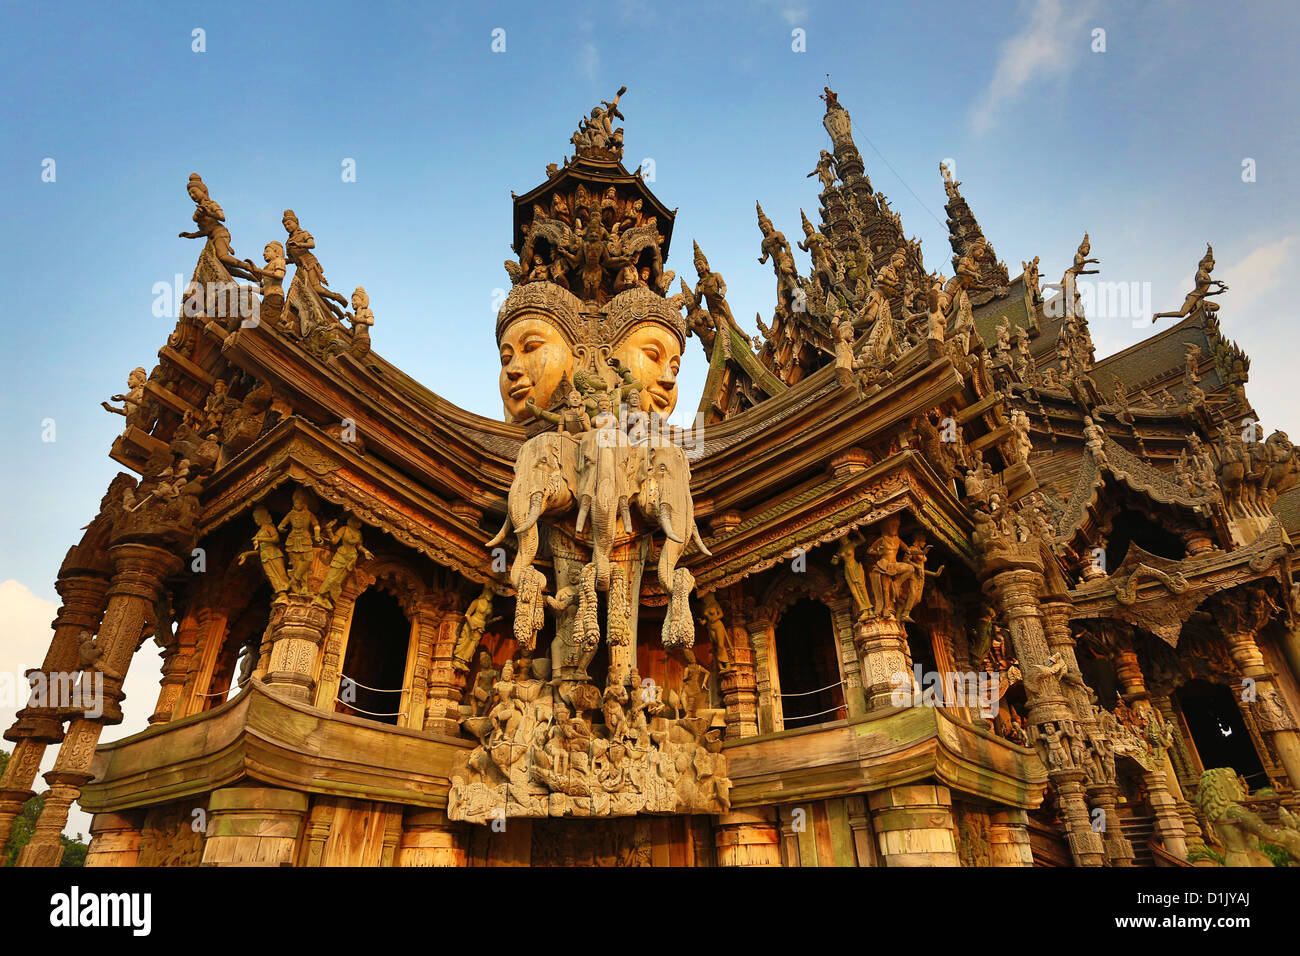 Wooden carving on the Sanctuary of Truth Temple, Prasat ...